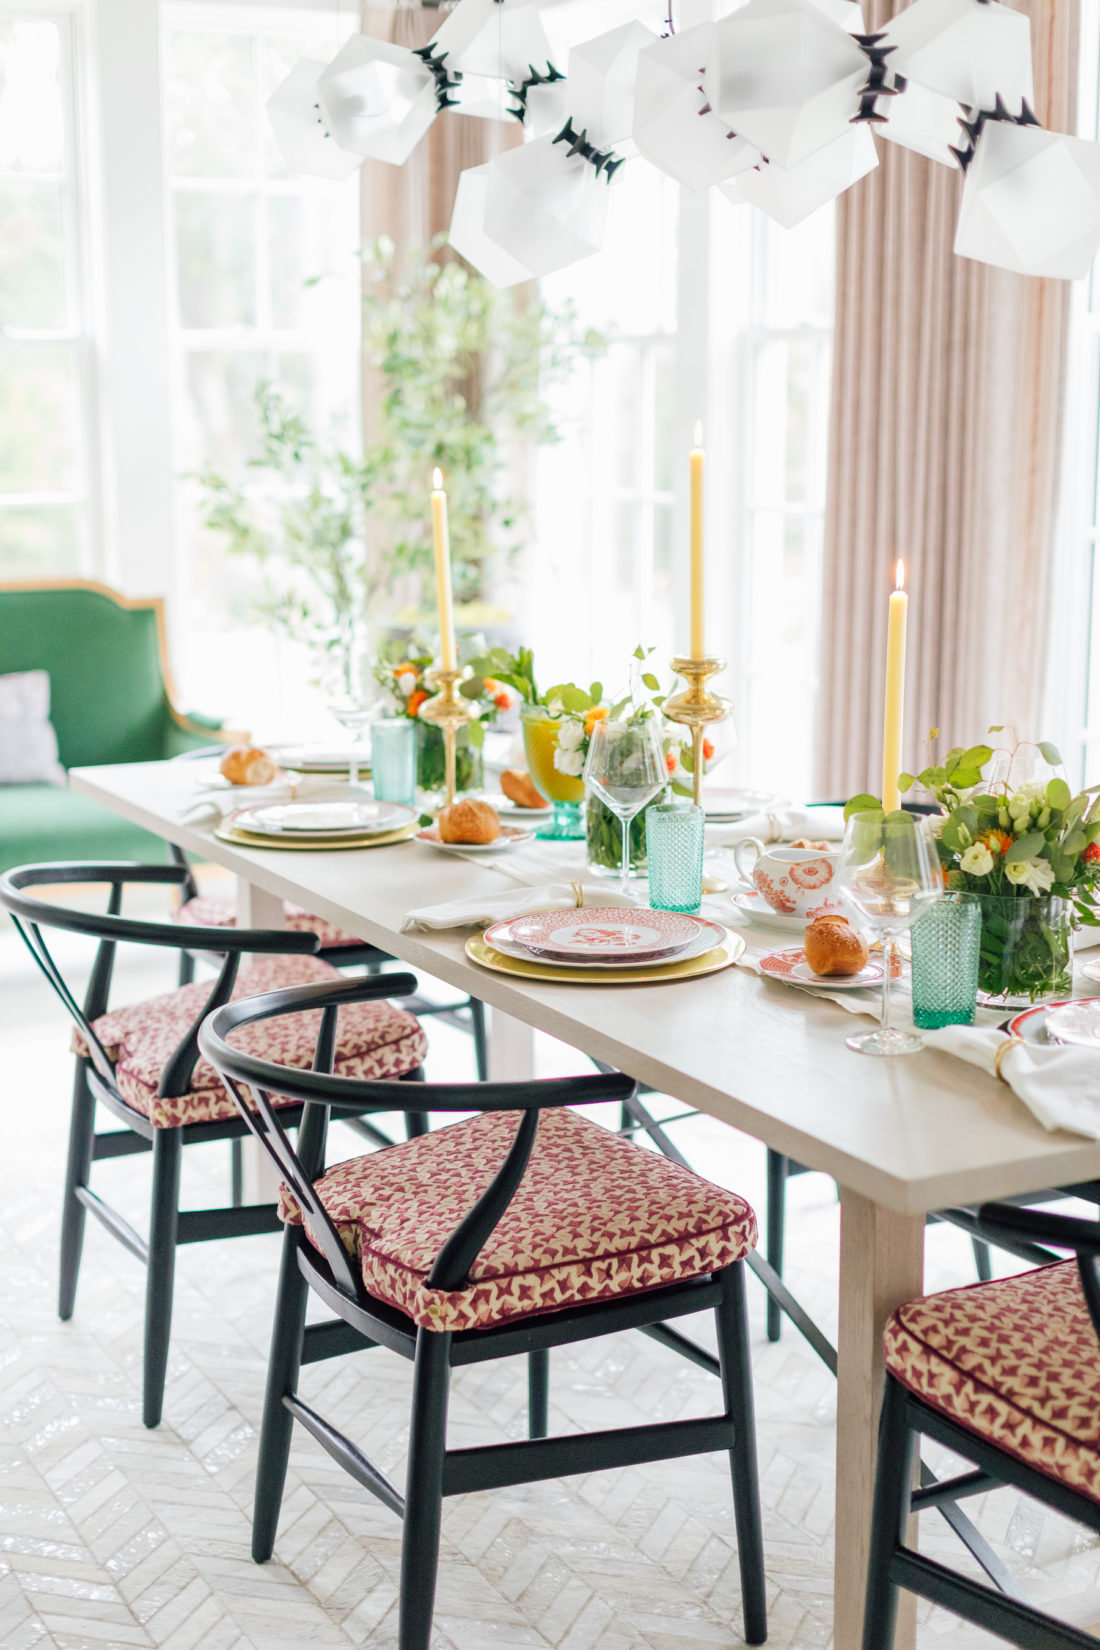 The table setting for Eva Amurri Martino's 2019 Thanksgiving